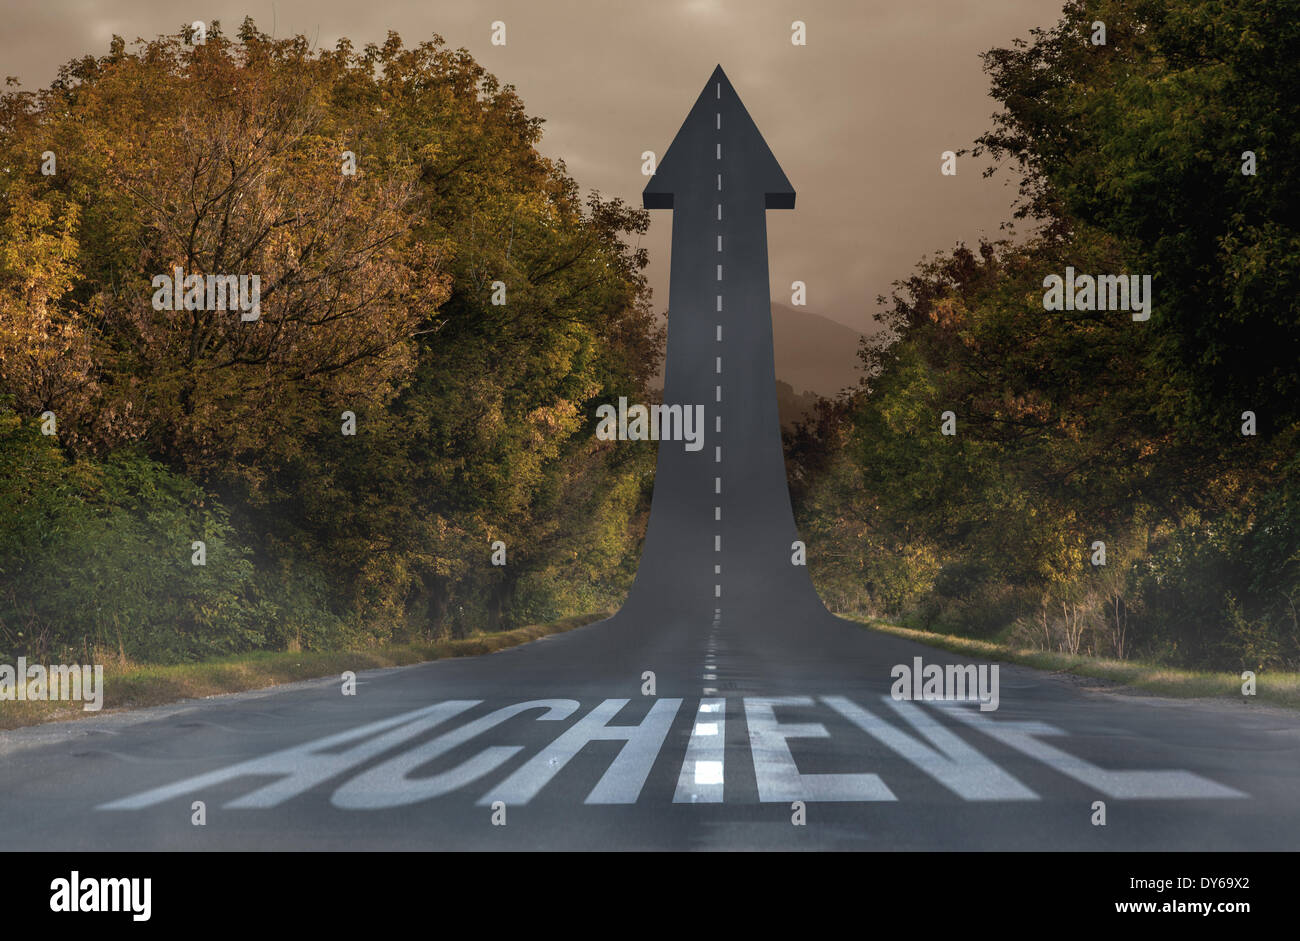 Achieve against road turning into arrow - Stock Image